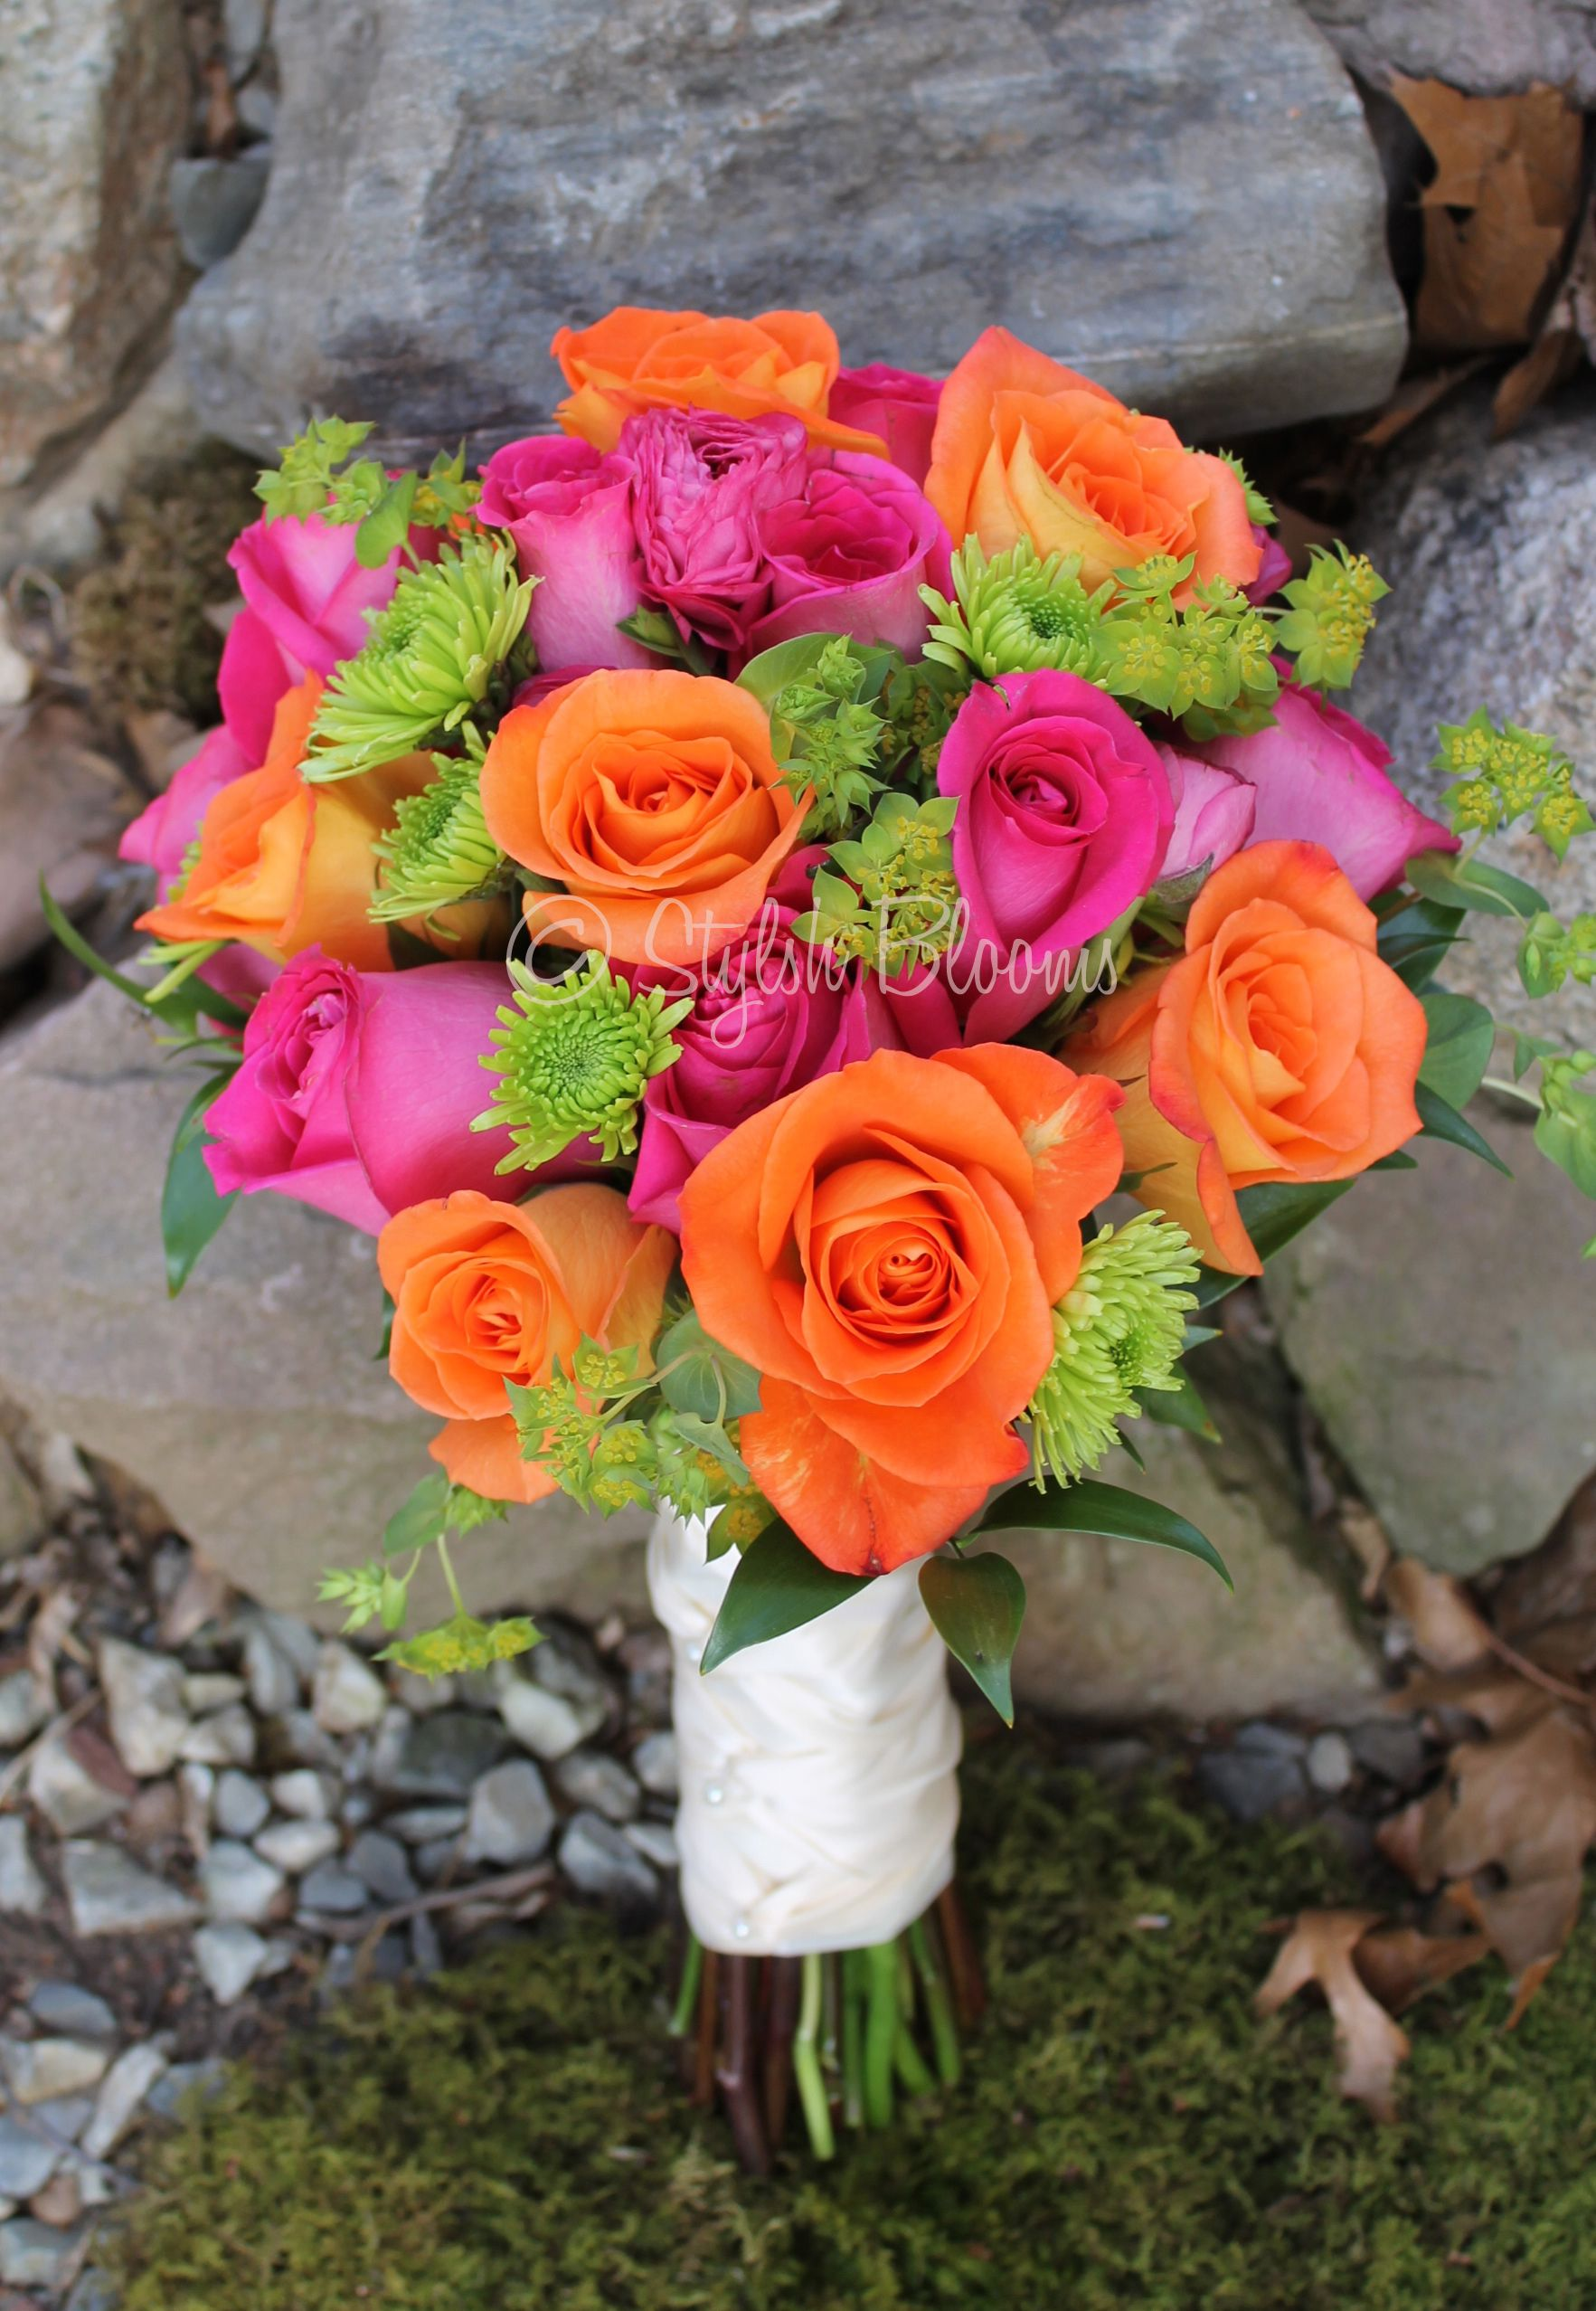 Colorful bouquet of orange roses hot pink roses and kermit mums colorful bouquet of orange roses hot pink roses and kermit mums izmirmasajfo